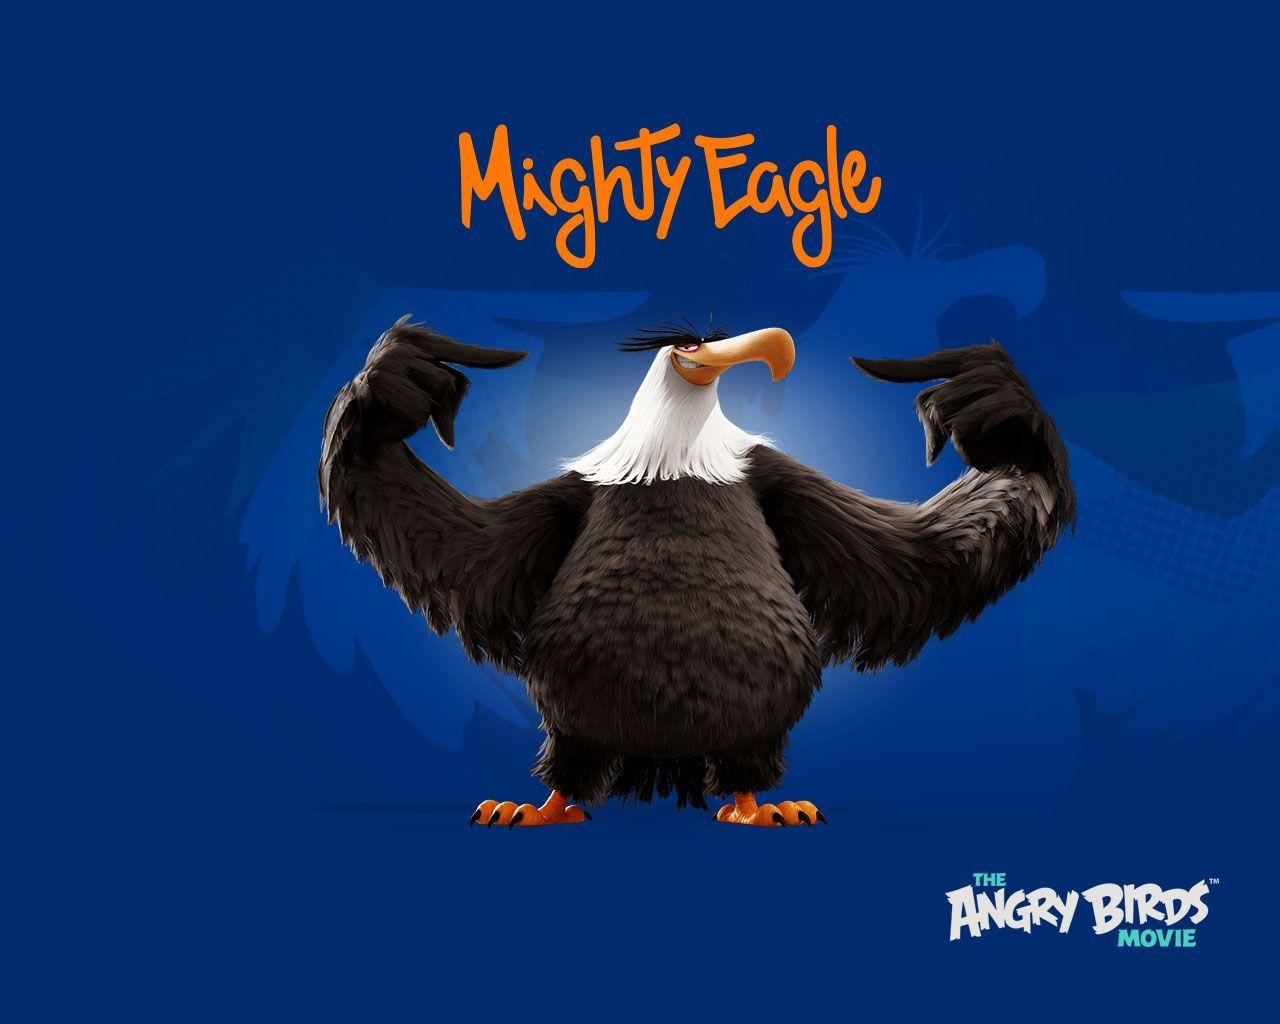 Mighty Eagle Wallpapers